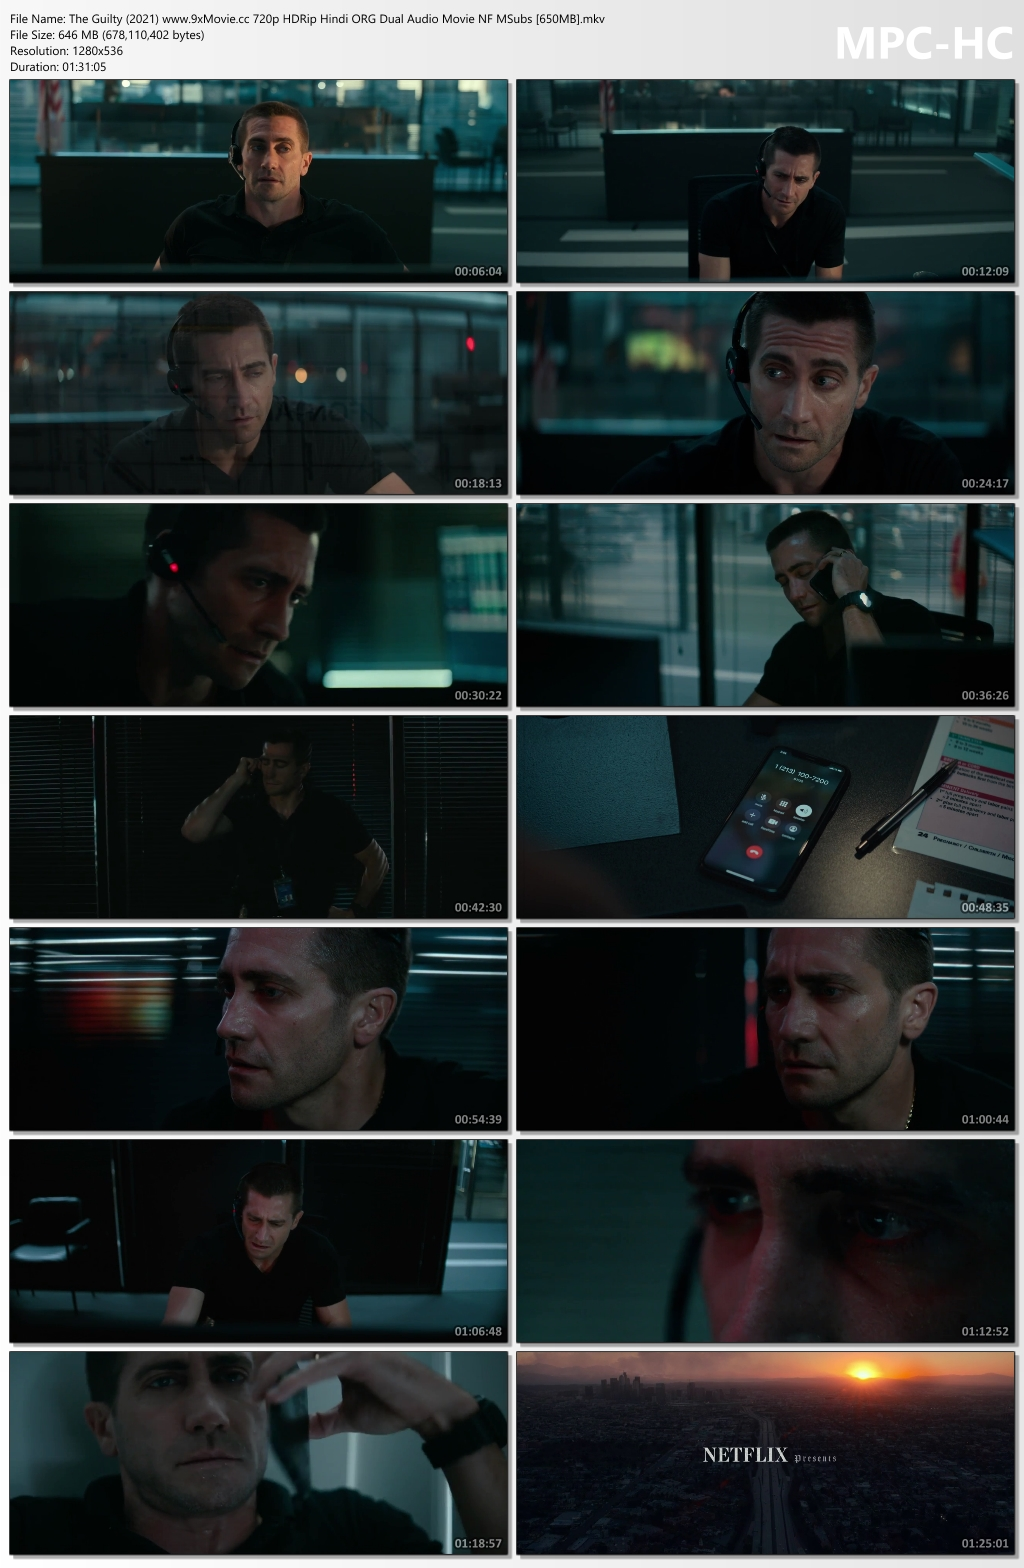 The-Guilty-2021-www-9x-Movie-cc-720p-HDRip-Hindi-ORG-Dual-Audio-Movie-NF-MSubs-650-MB-mkv